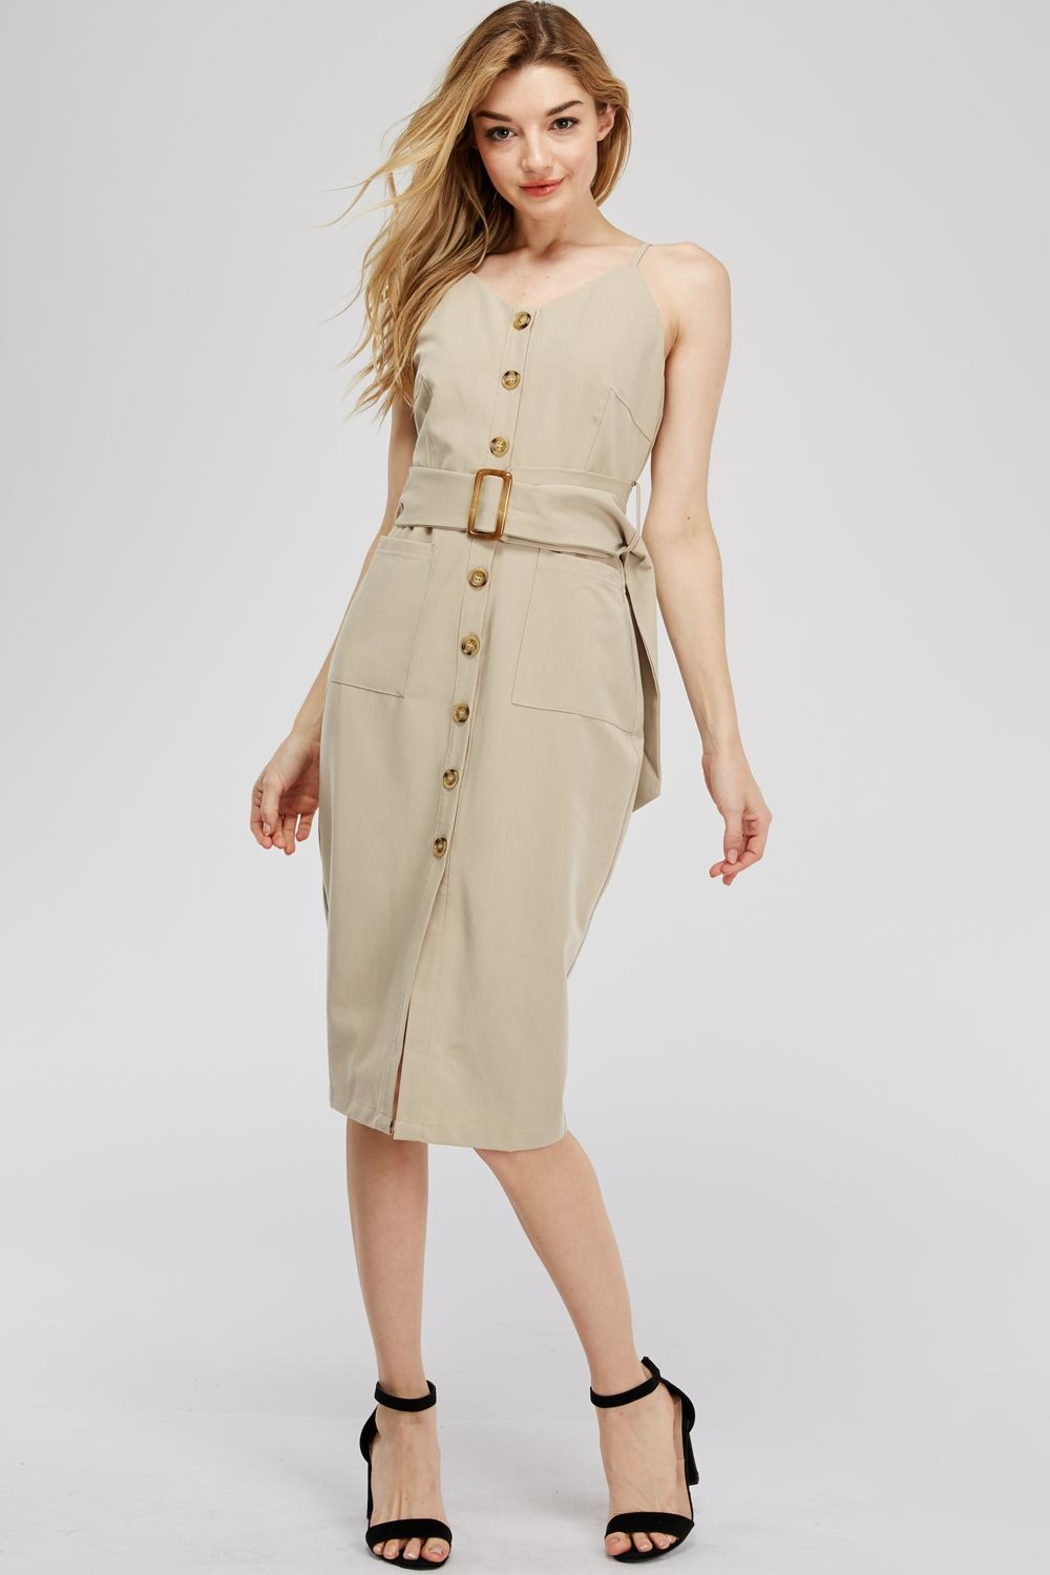 Main Strip Button-Up Belted Dress - Main Image